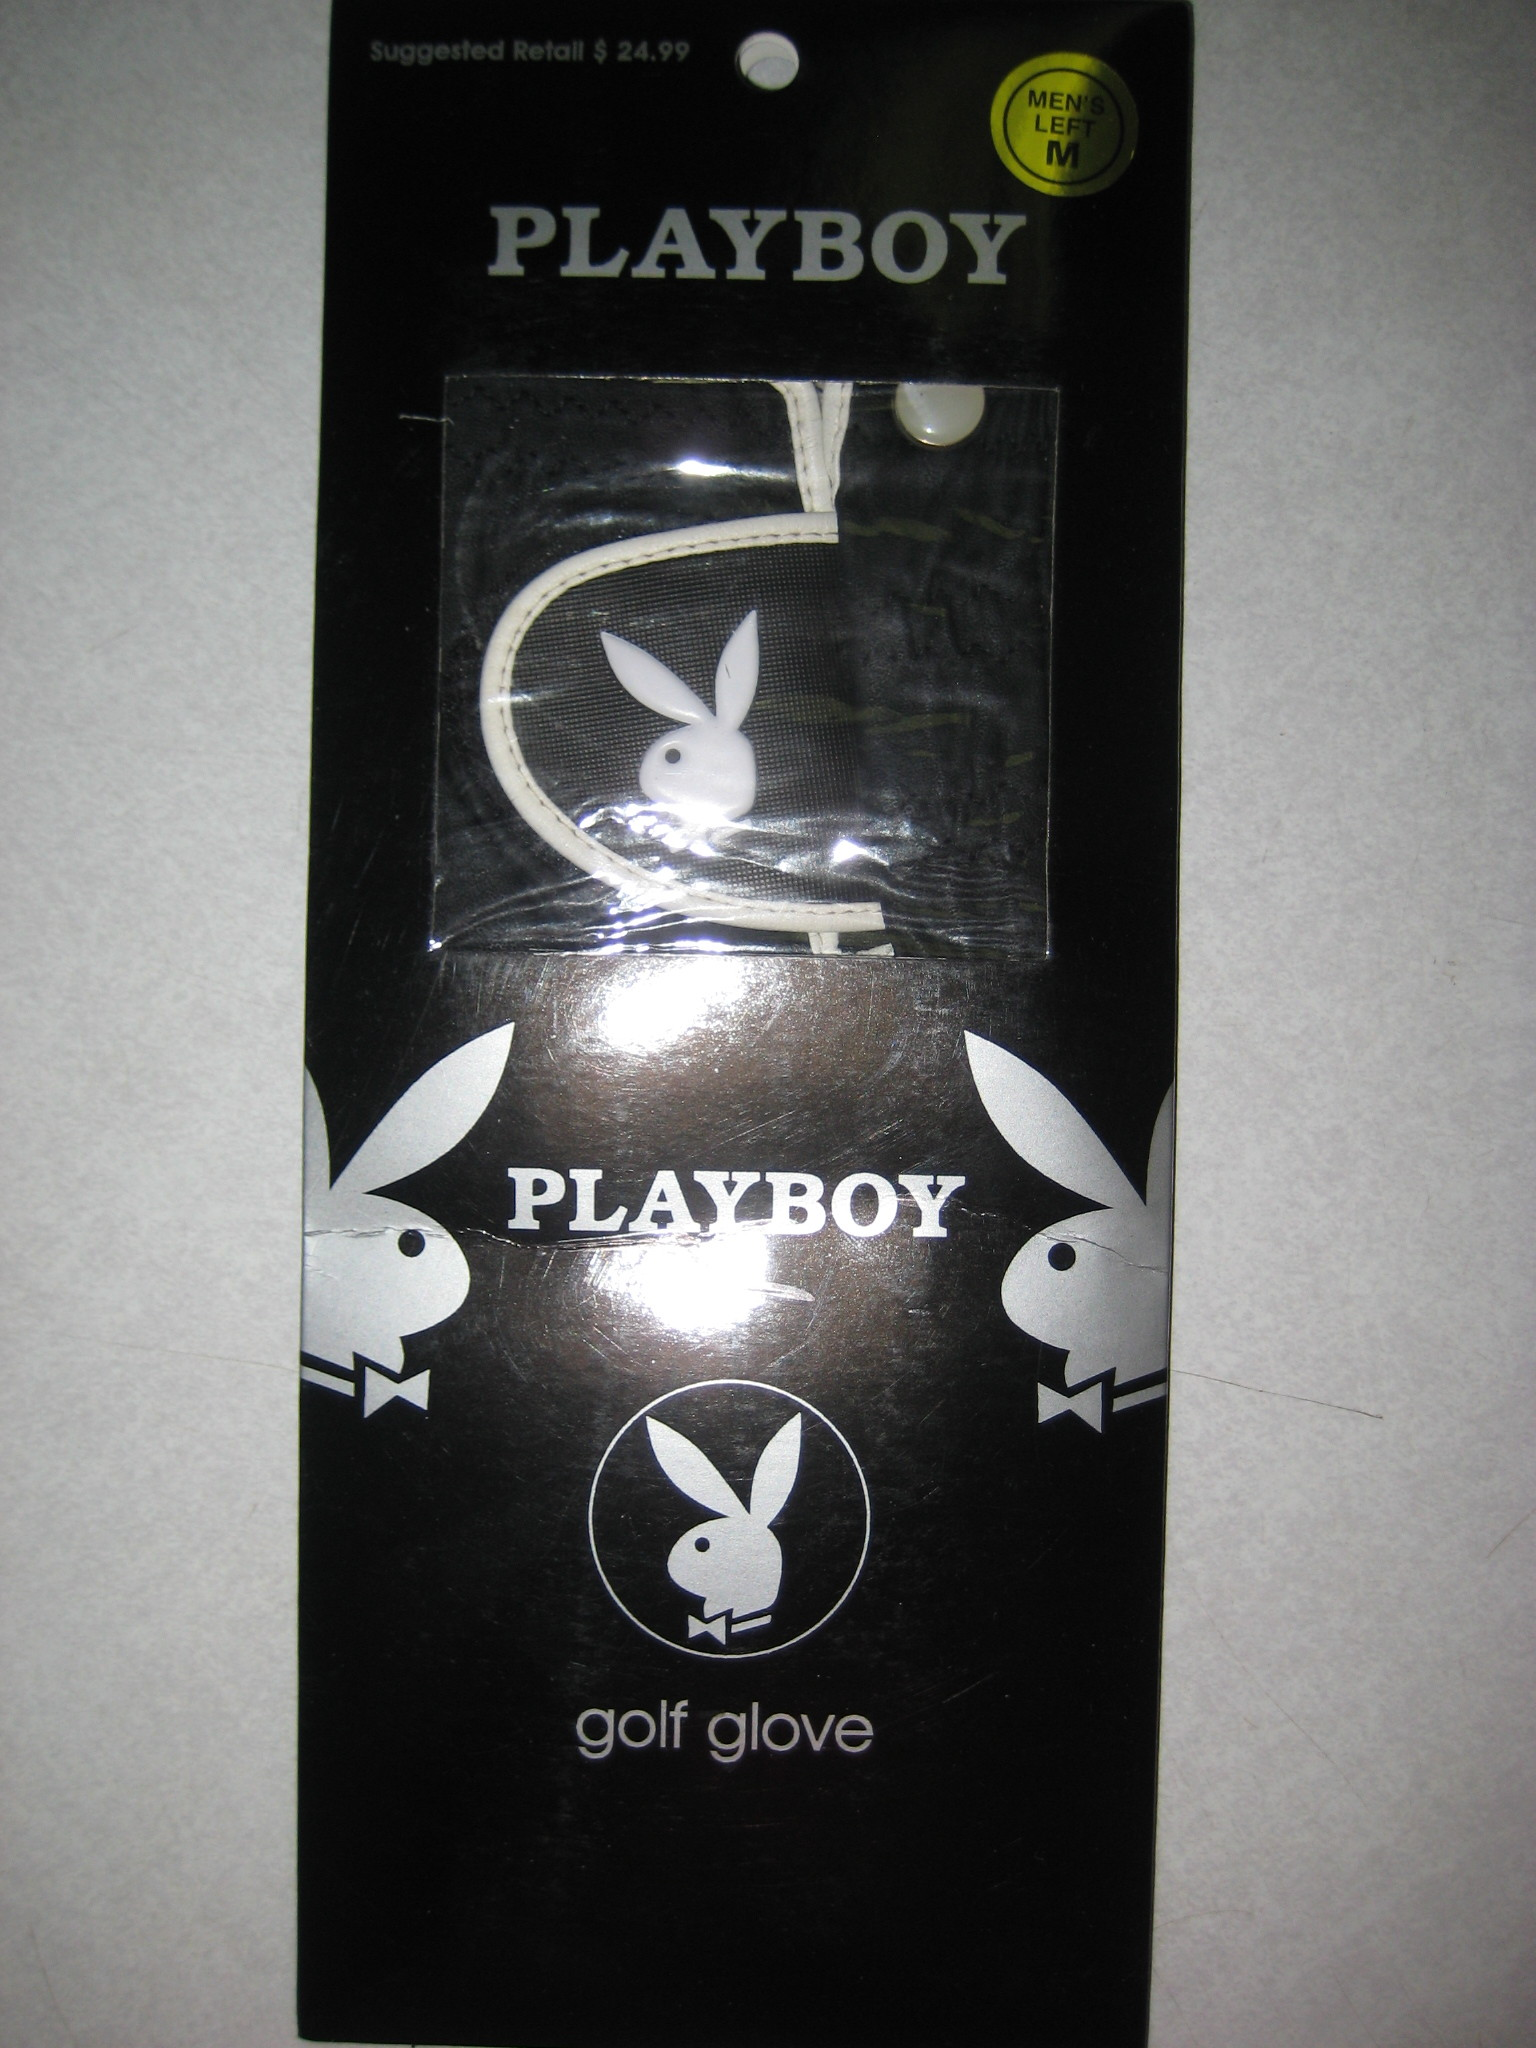 Playboy Golf Glove